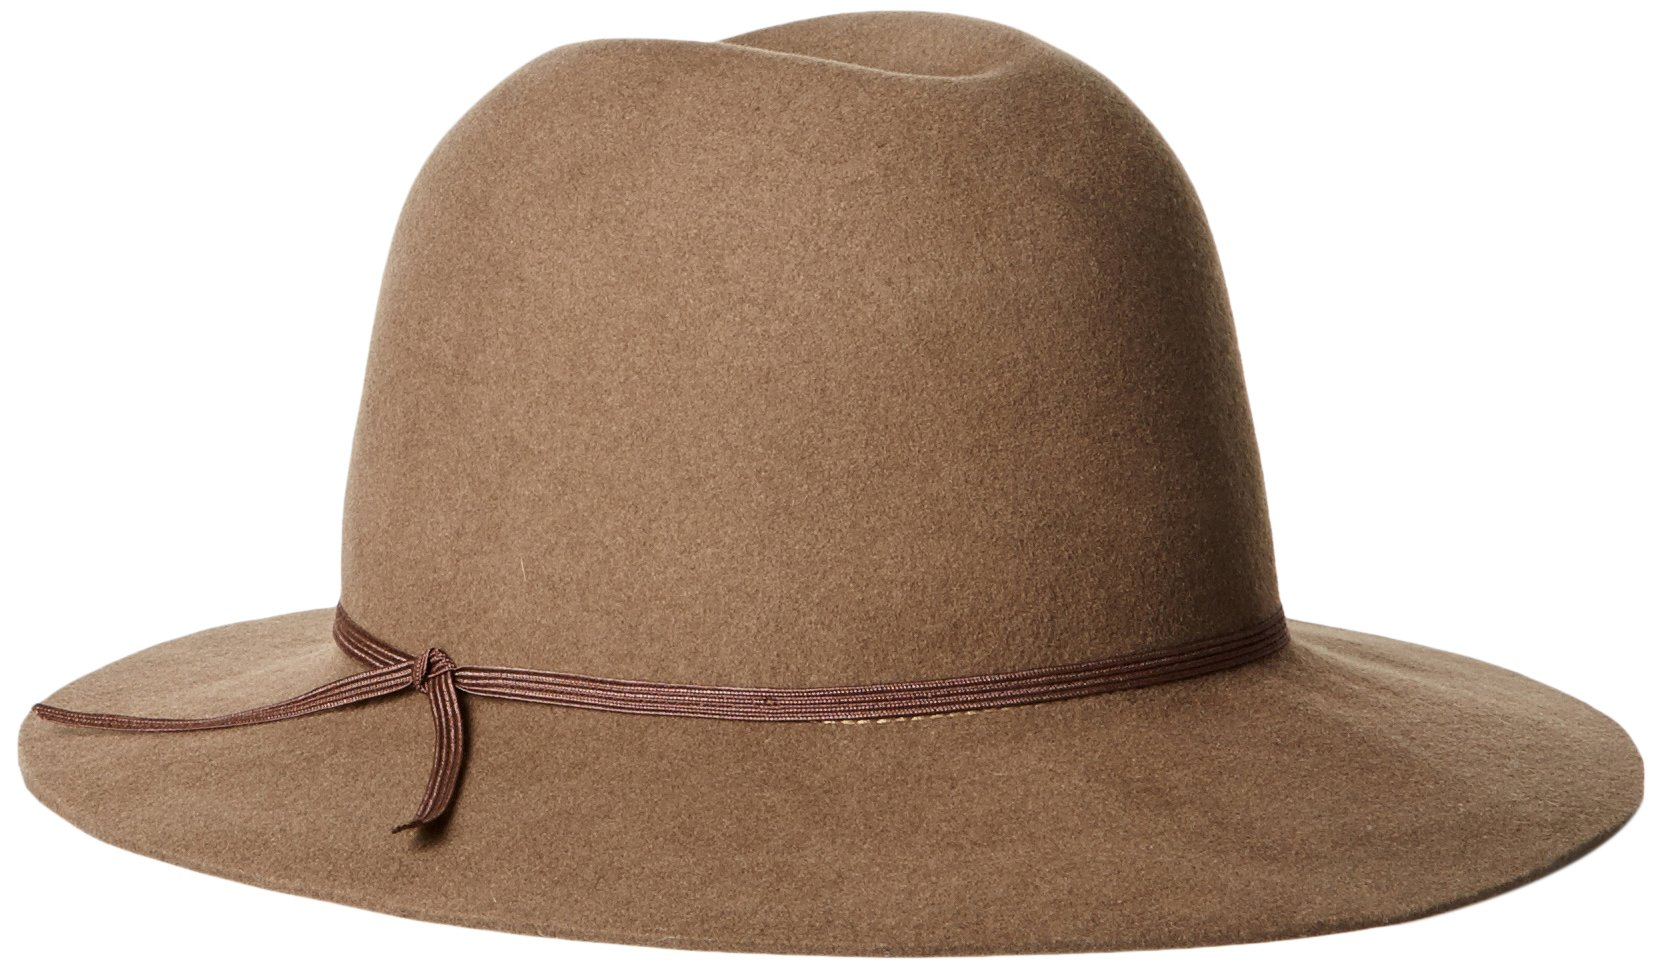 Hat Attack Women's Water Resistant Wool Felt Hat, Putty, One Size